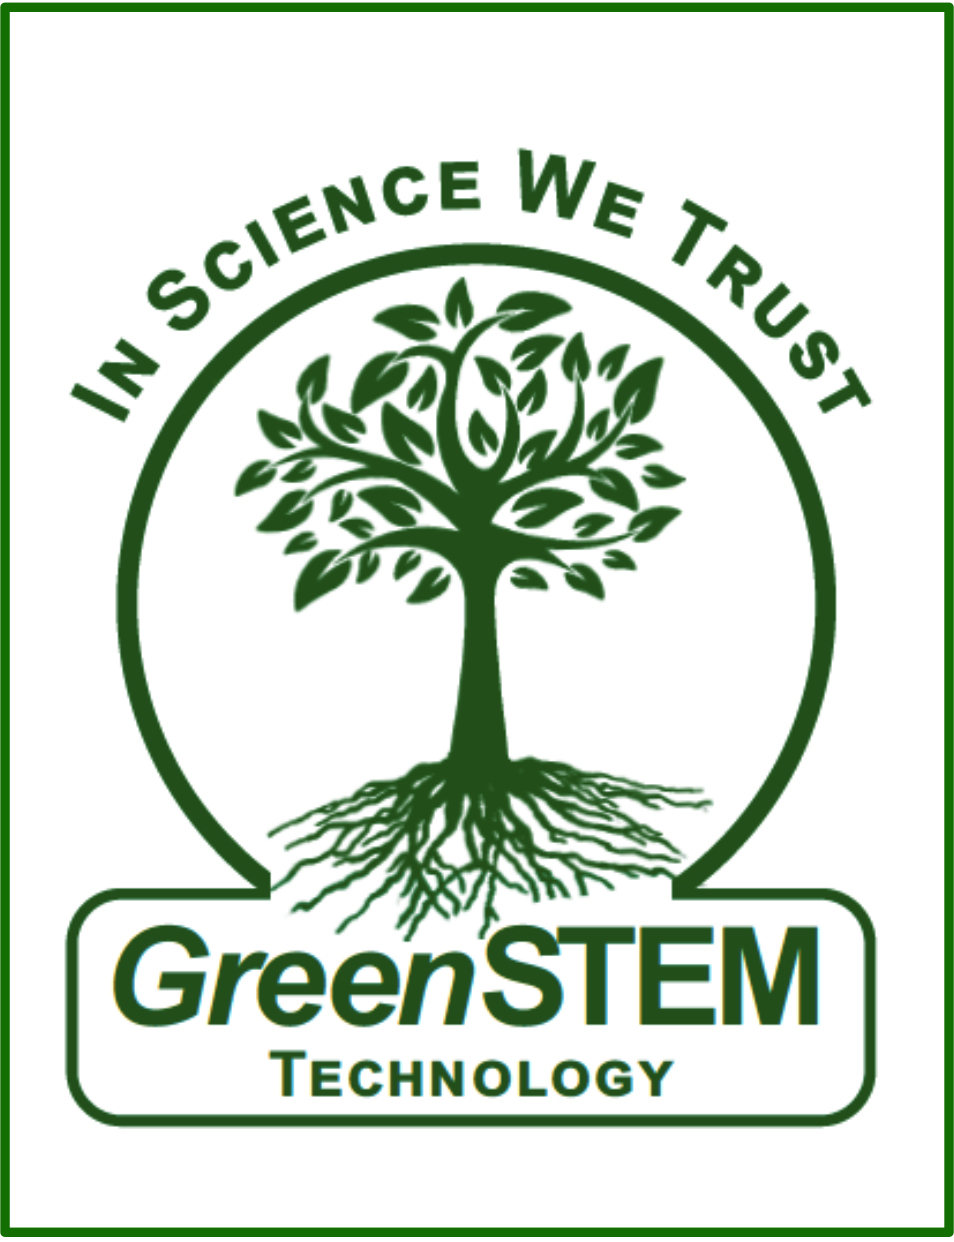 GreenSTEM Technology Corp